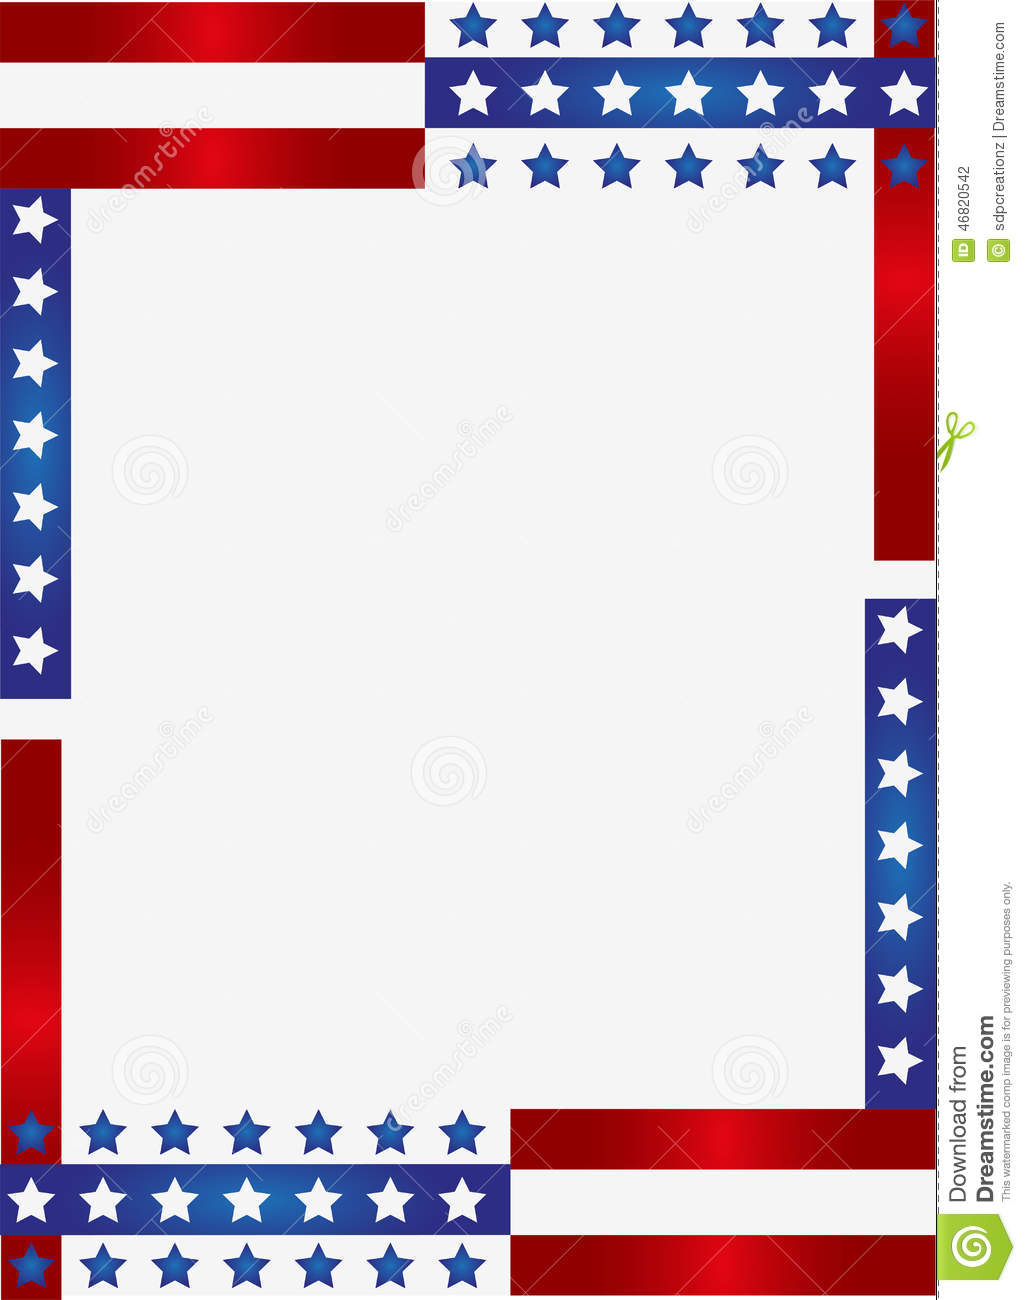 ... red stripes and the stars on blue stripes page border / frame design